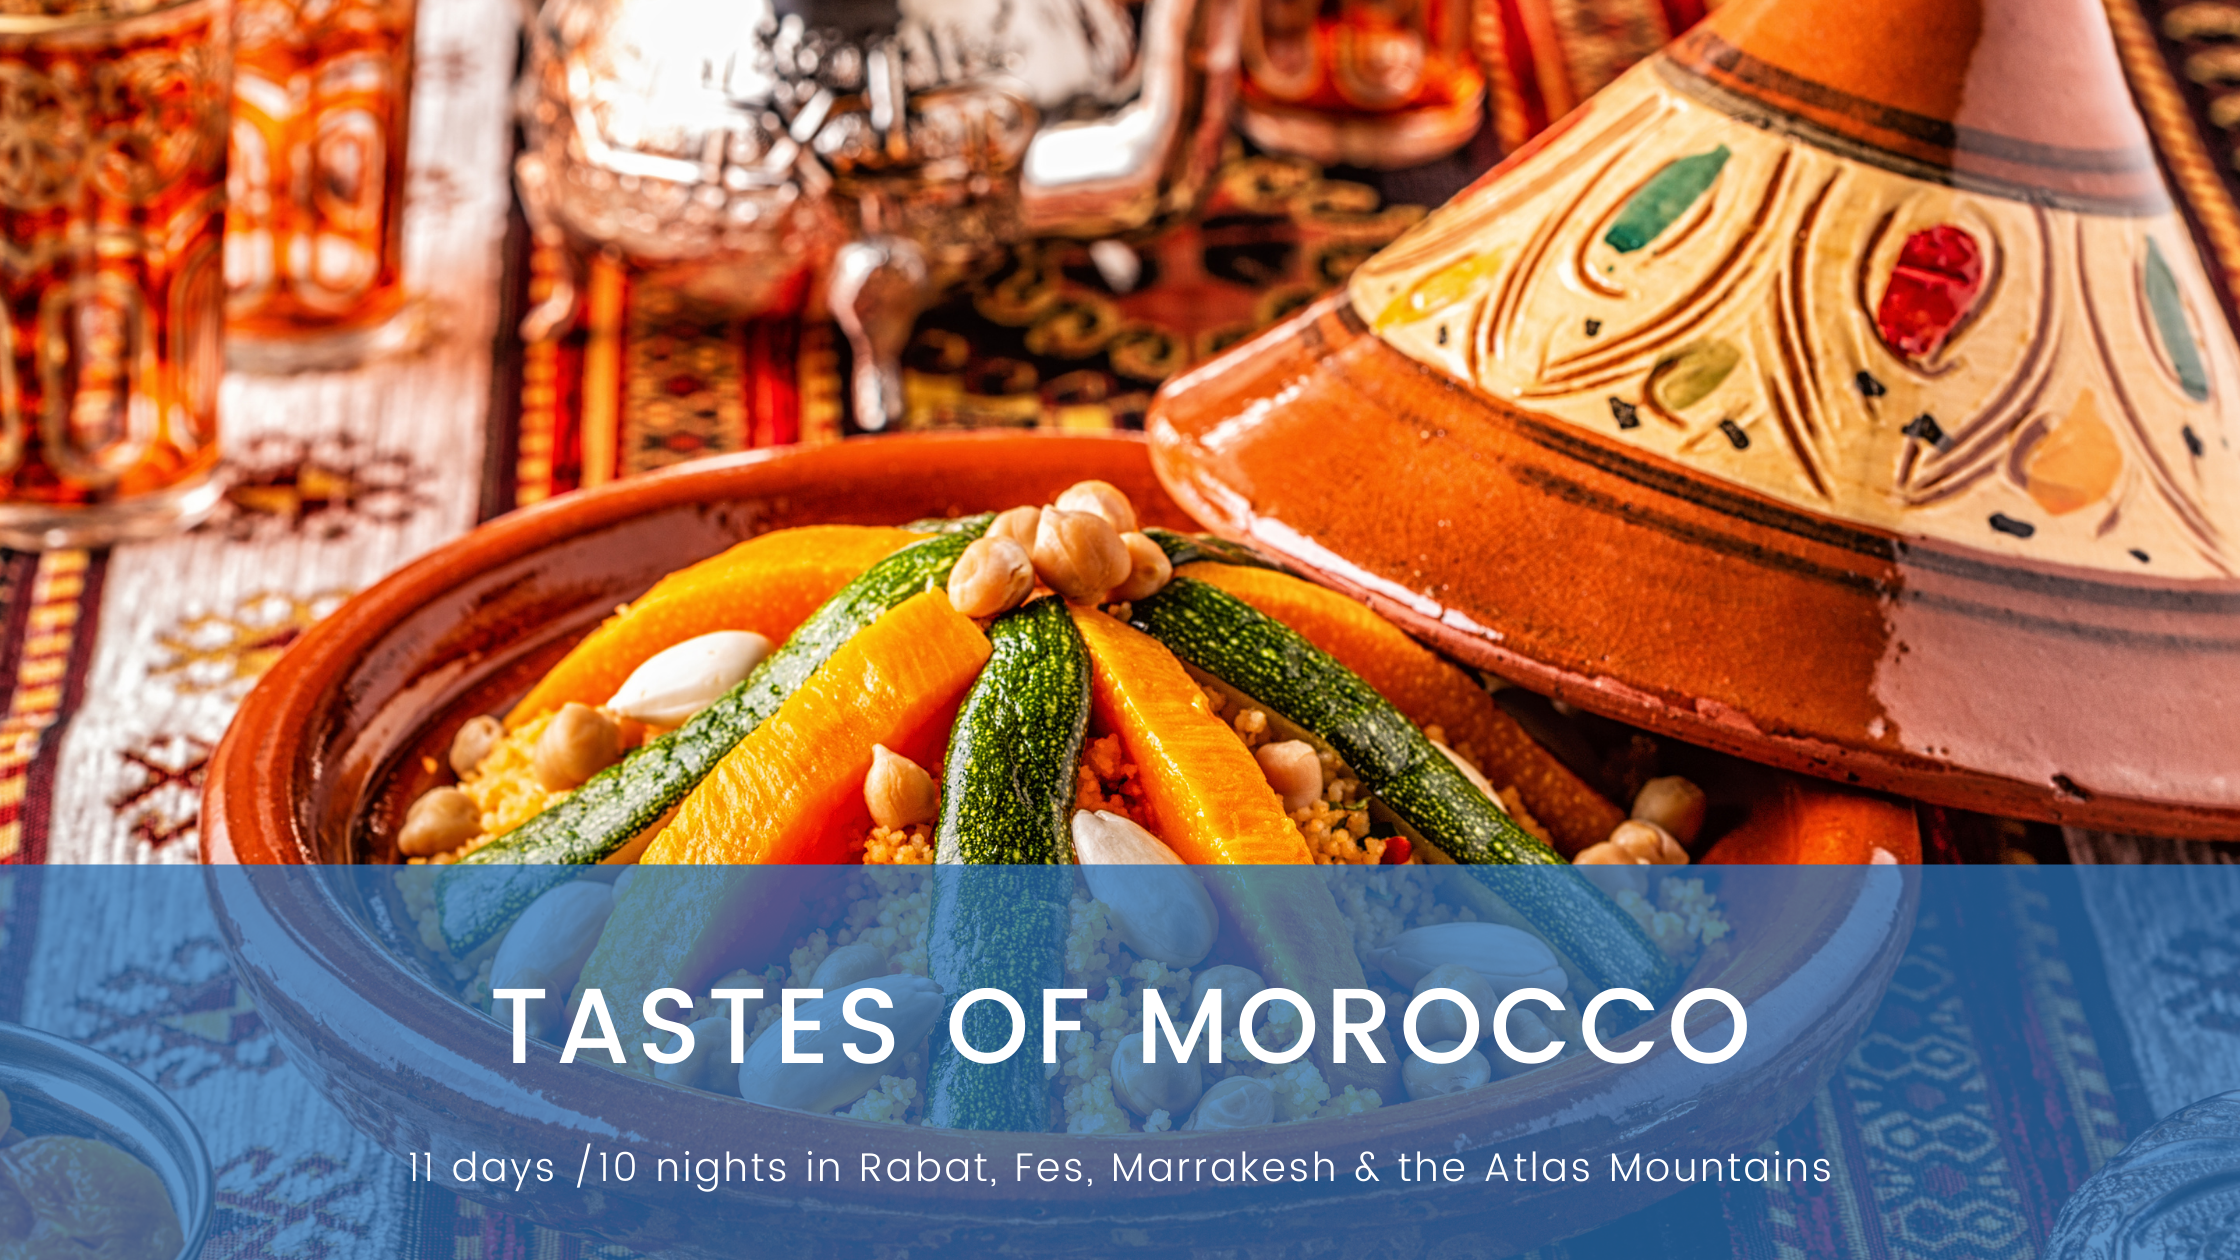 Tastes of Morocco